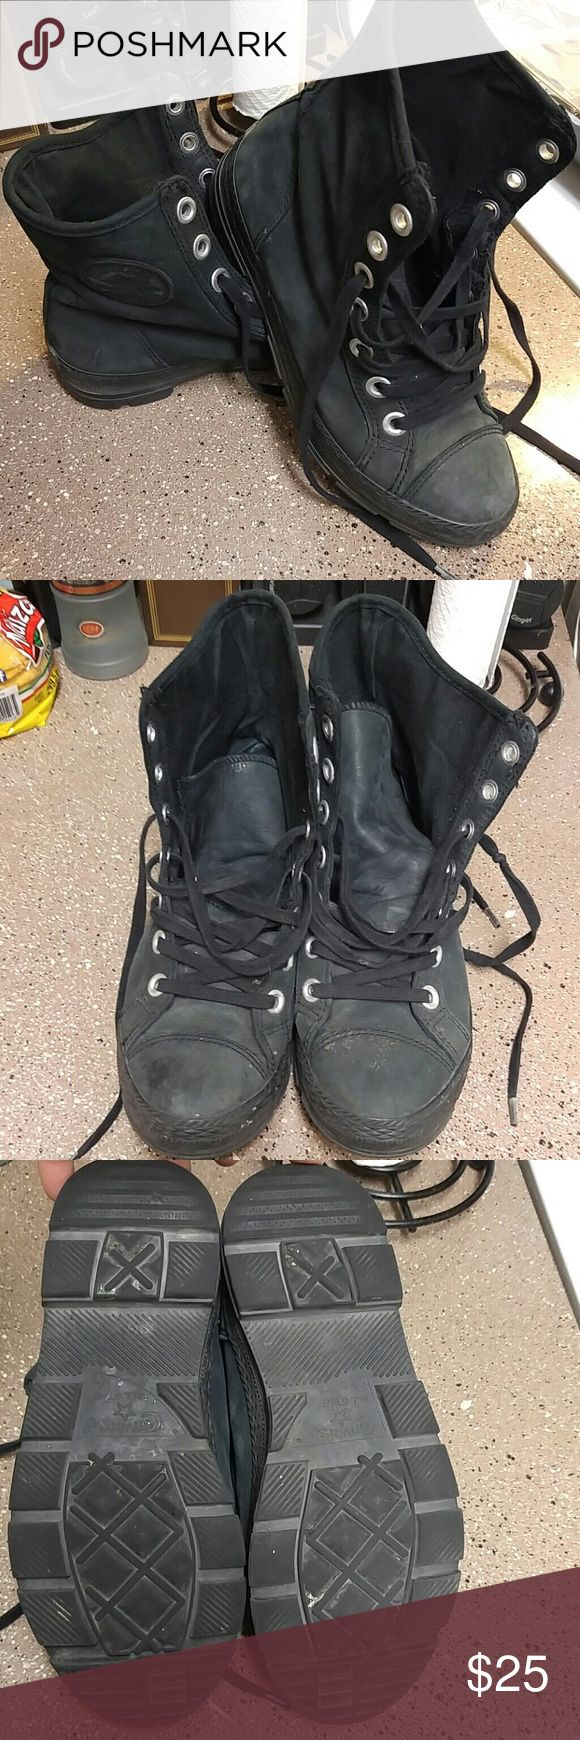 Black on black converse boots Worn more than a few times had for a year good condition faded as u can see.no rips Converse Shoes Ankle Boots & Booties